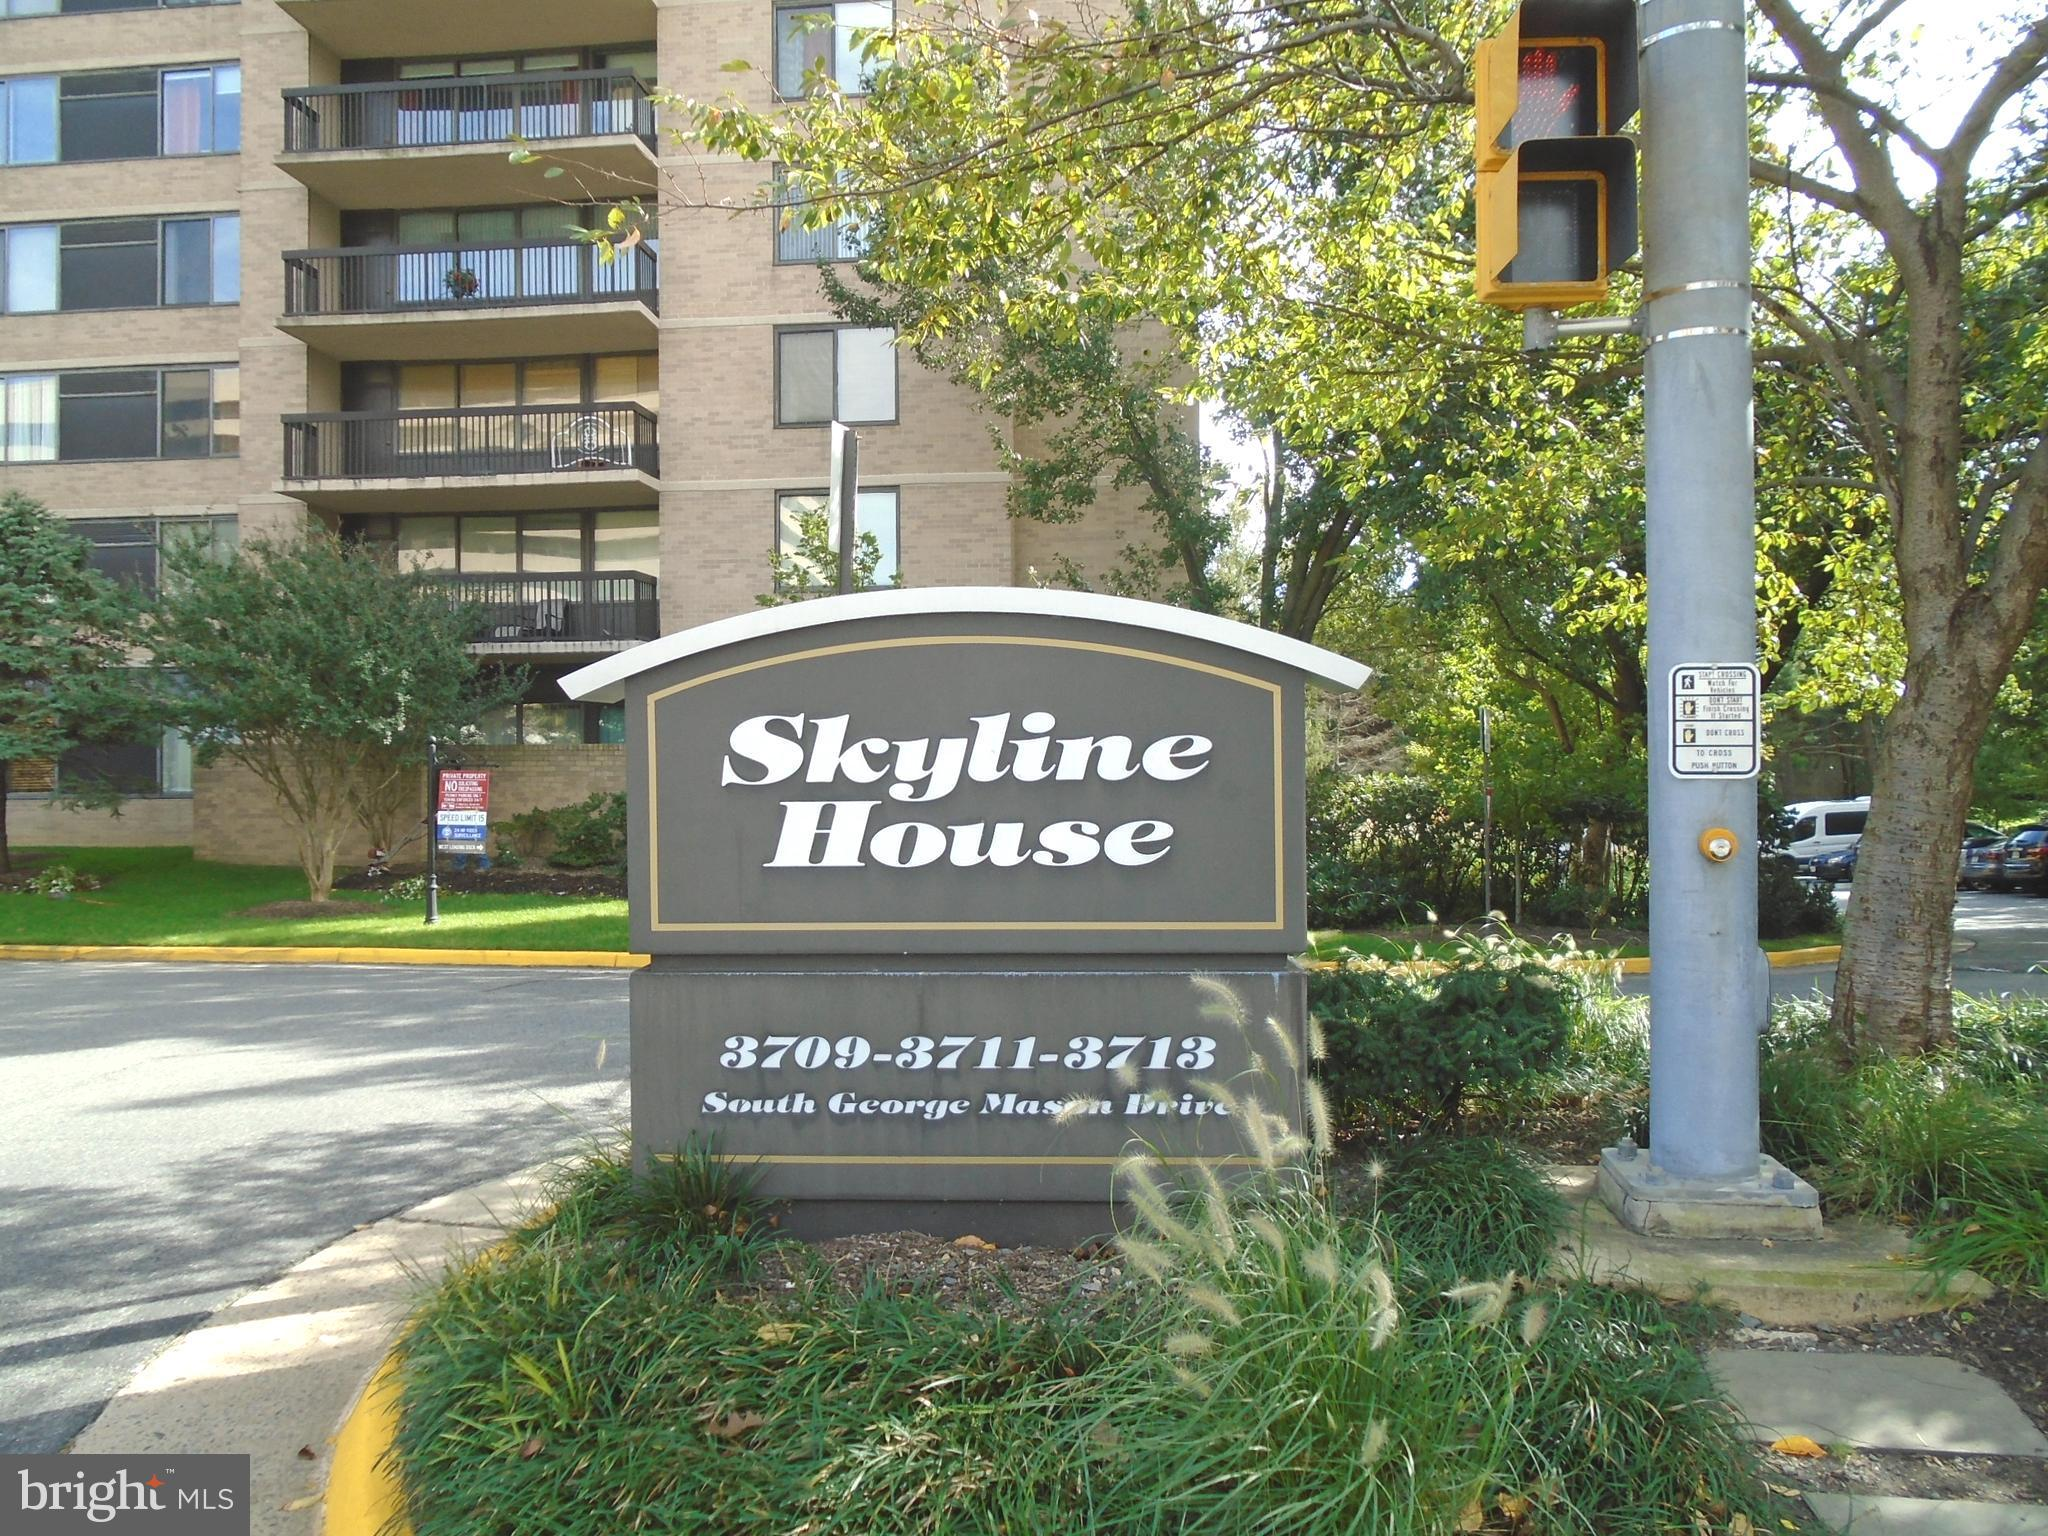 Move in ready! Beautiful & Spacious 2 BR/2 BA condo in sought after Skyline House! Home Features a s